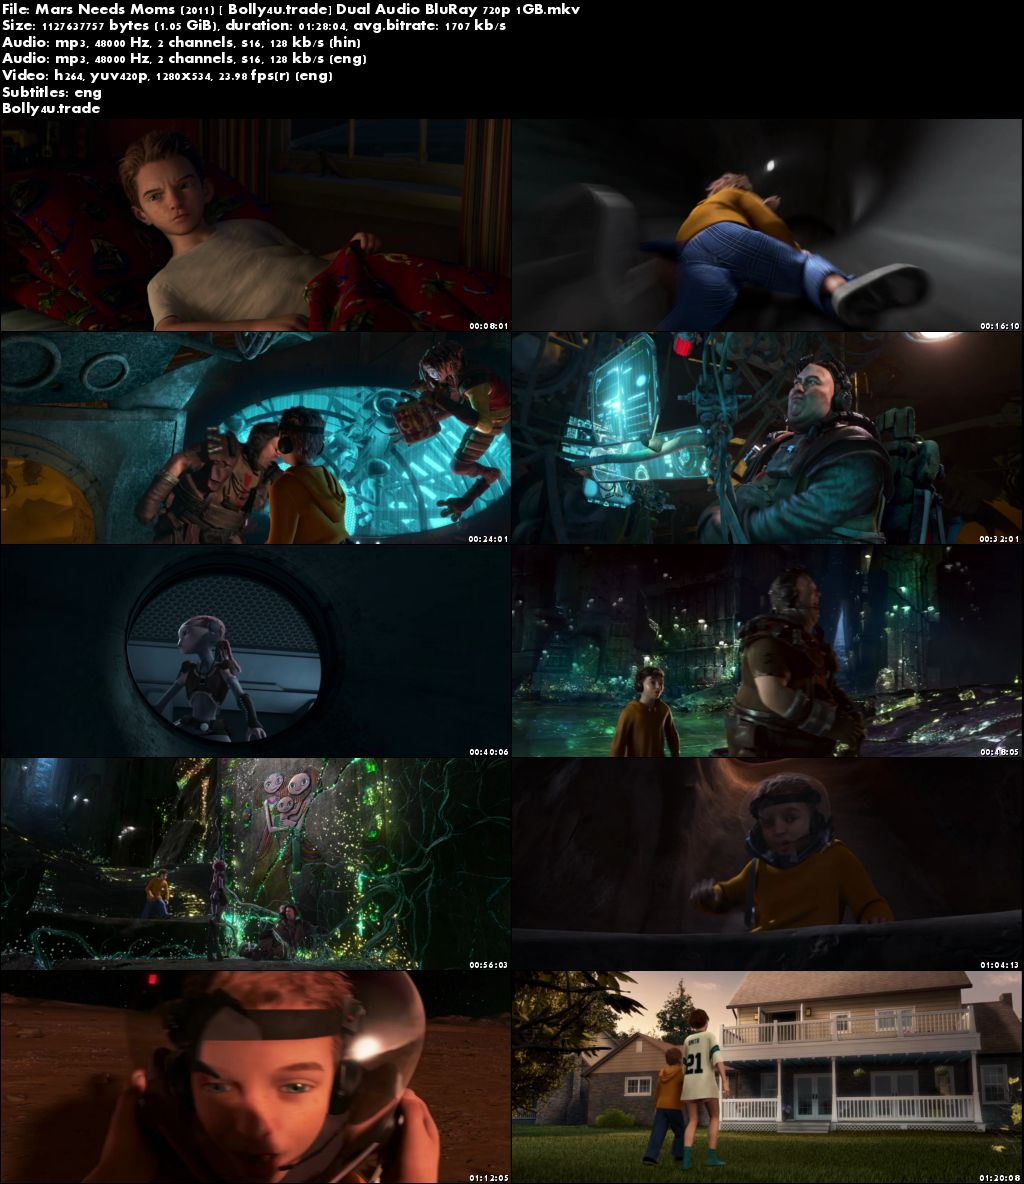 Mars Needs Moms 2011 BRRip 1GB Hindi Dual Audio 720p Download